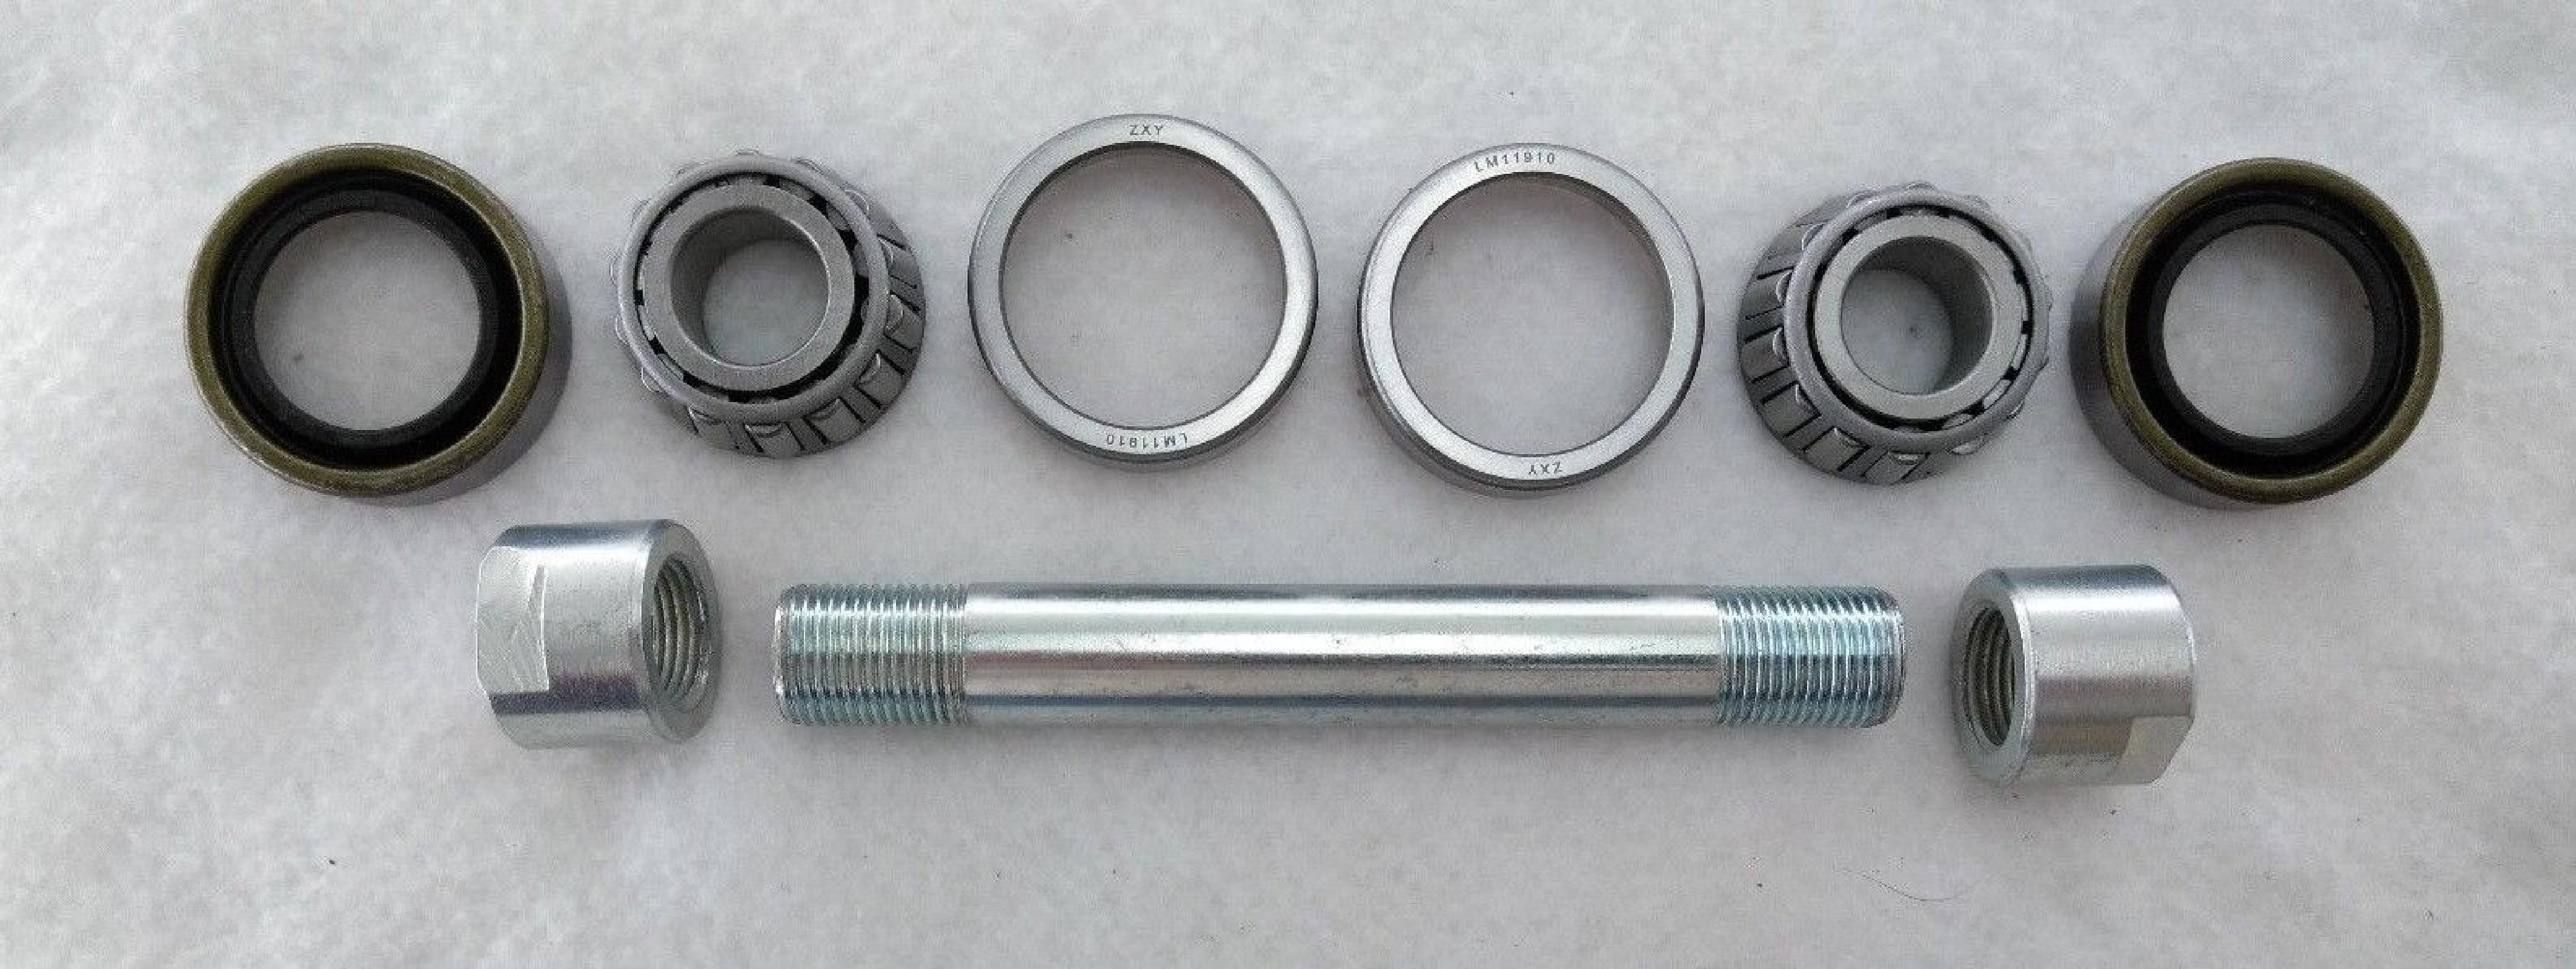 Replacement bearing assembly kit for Exmark 103-3051 / 126-5